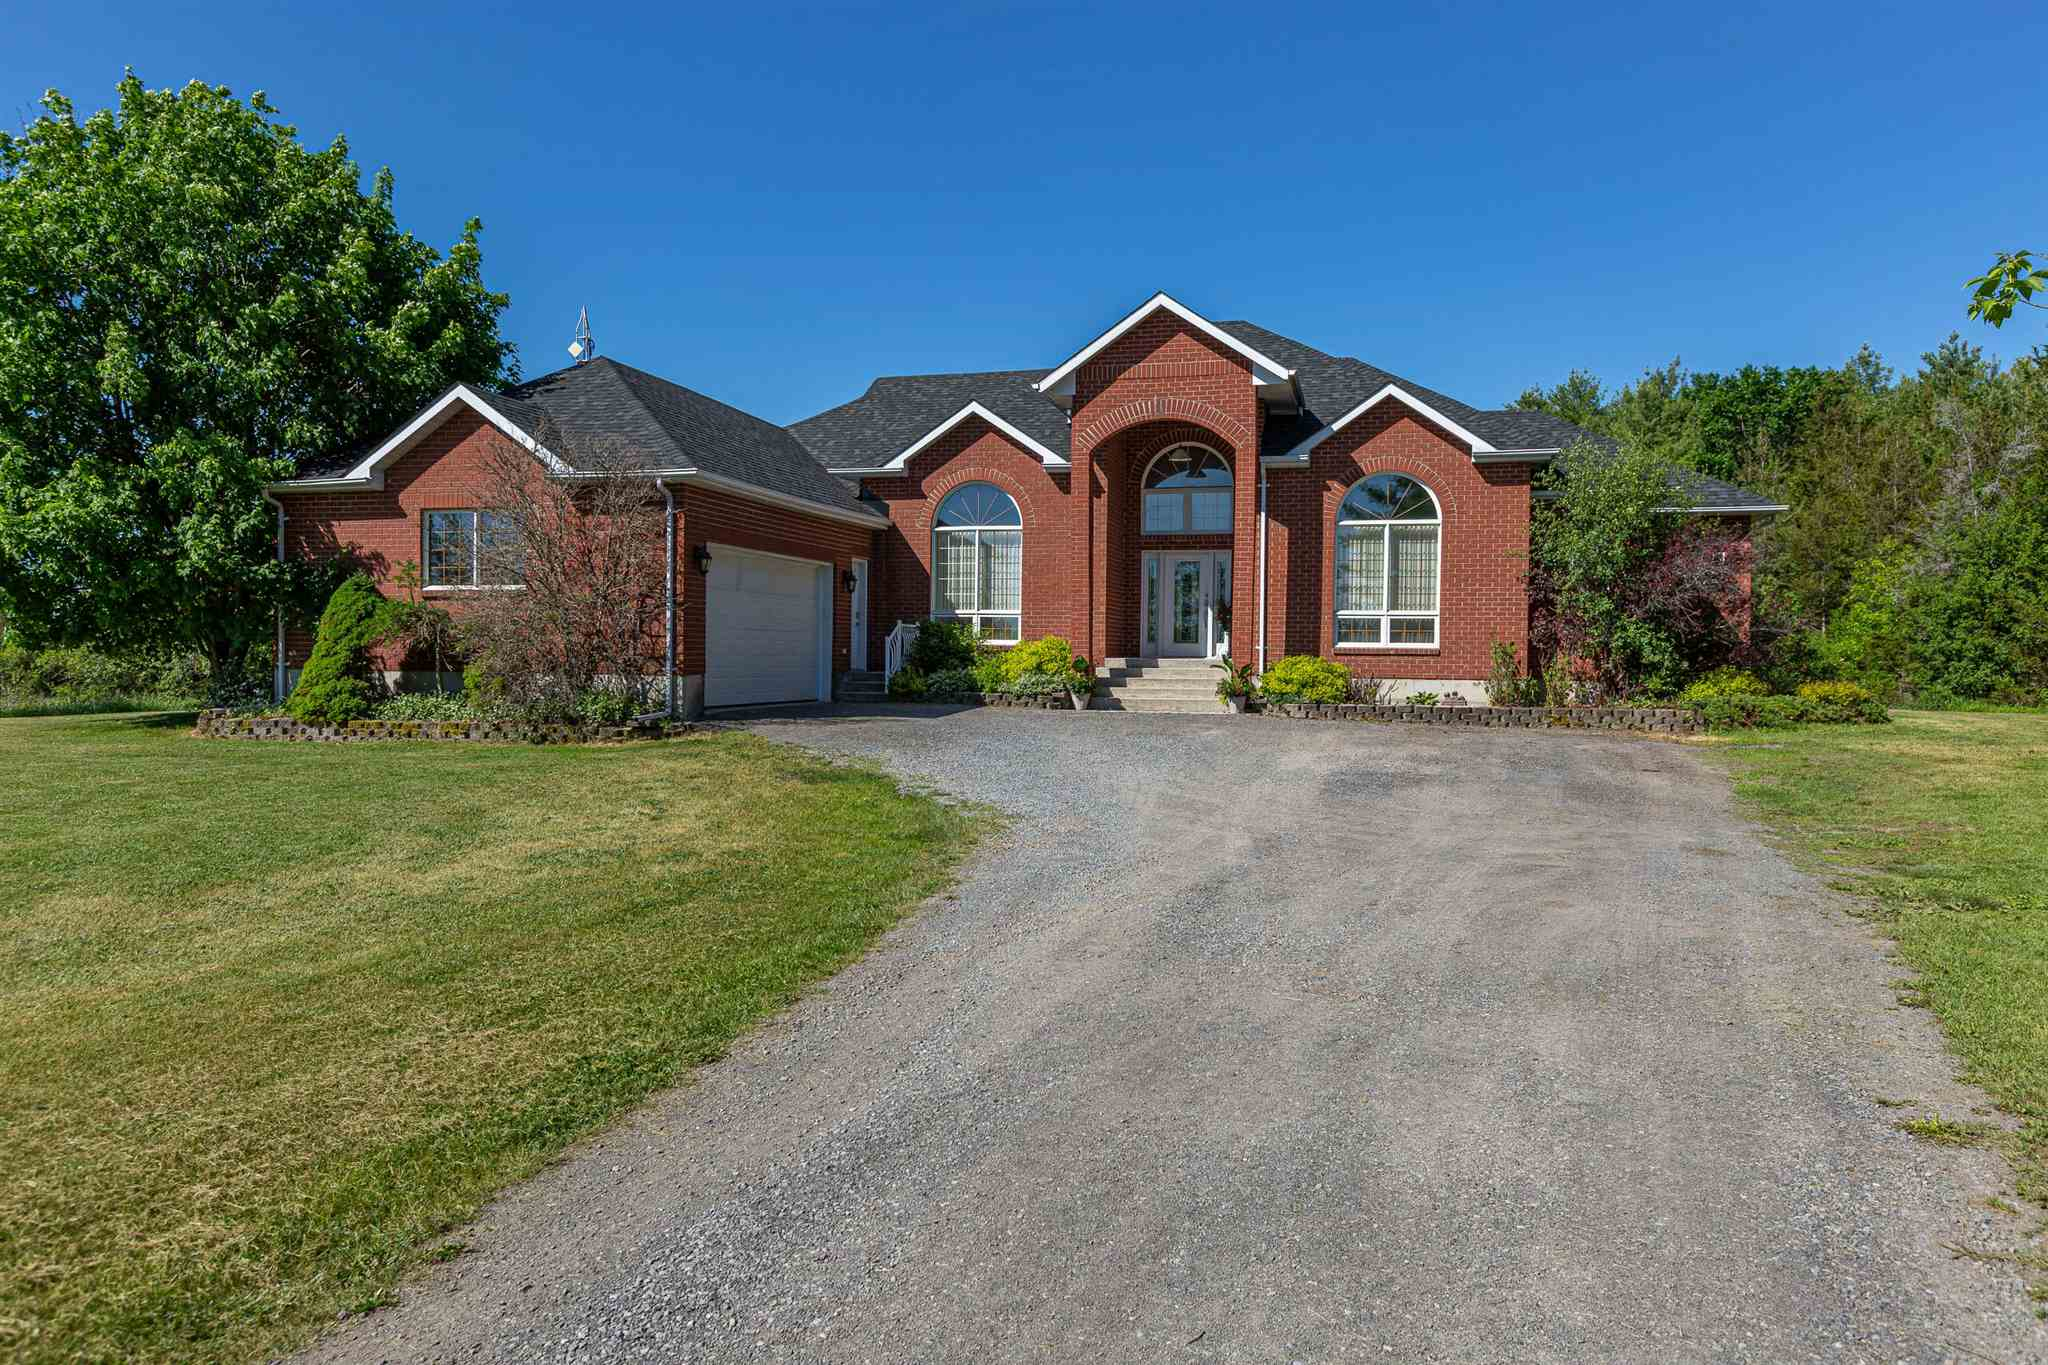 1408 Brandon Road, Loyalist Township, Ontario (ID K20003101)